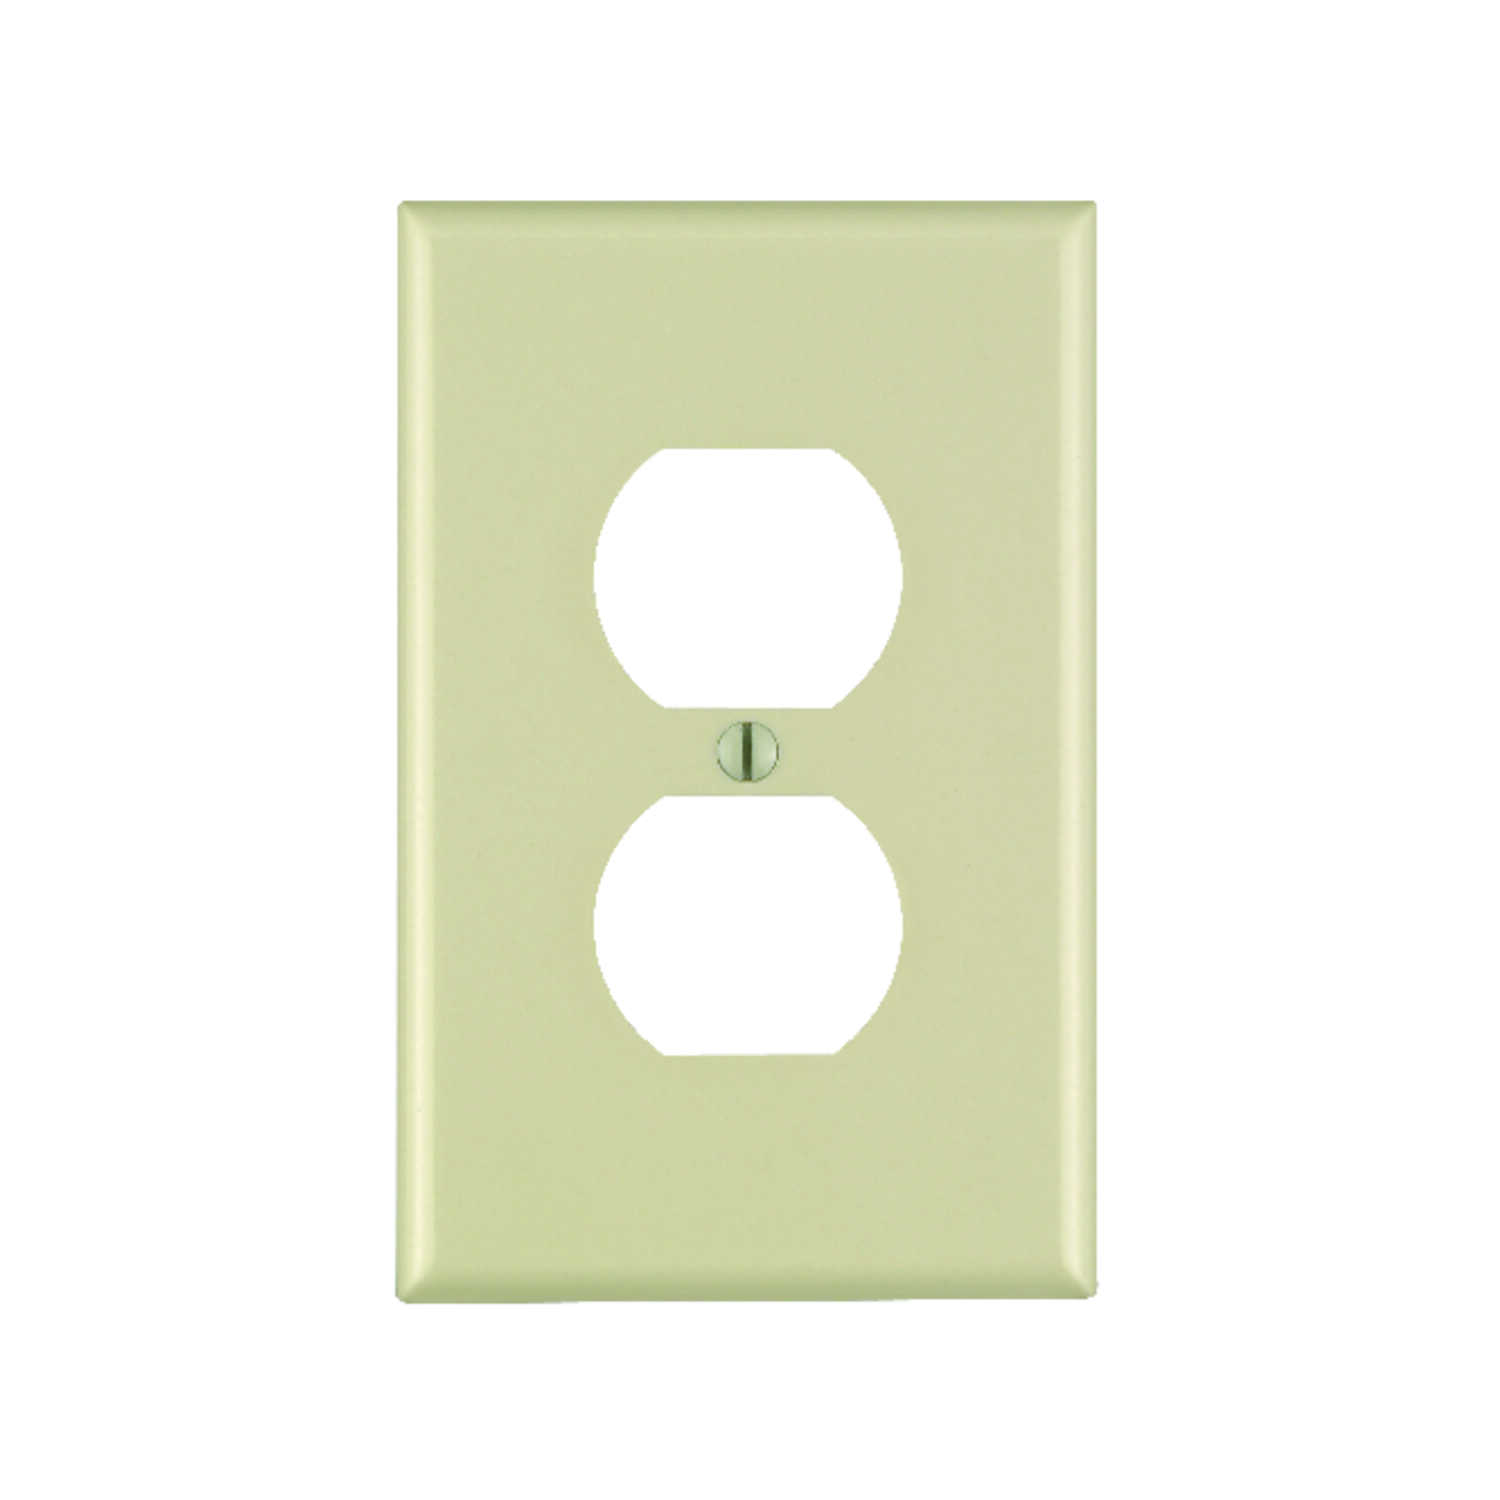 Leviton  Decora  Ivory  1 gang Plastic  Duplex Outlet  Wall Plate  1 pk